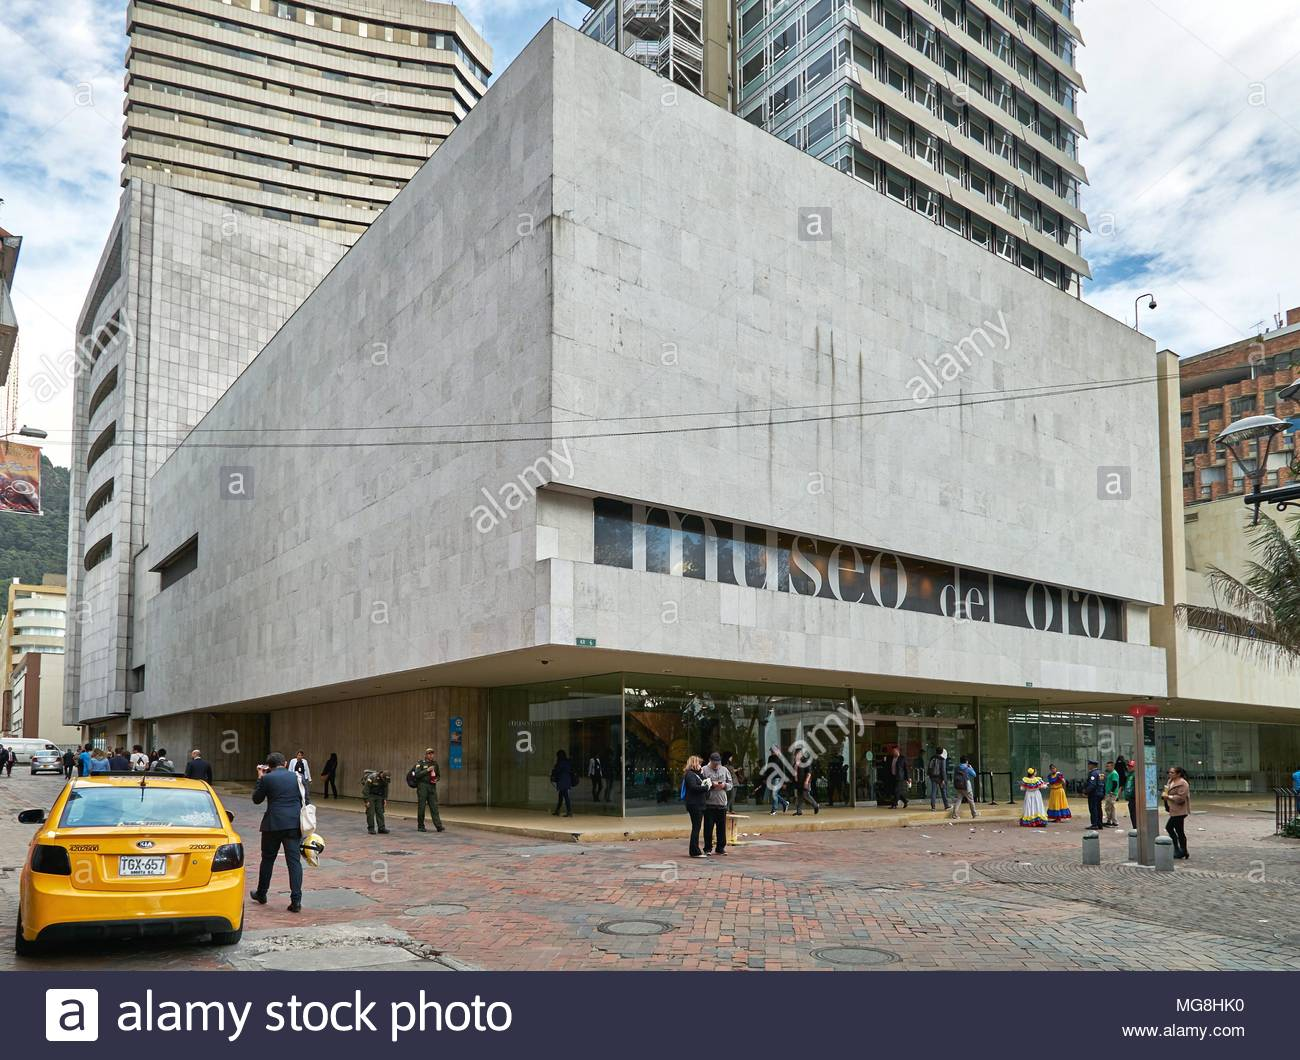 outside view of Museo del Oro - Stock Image